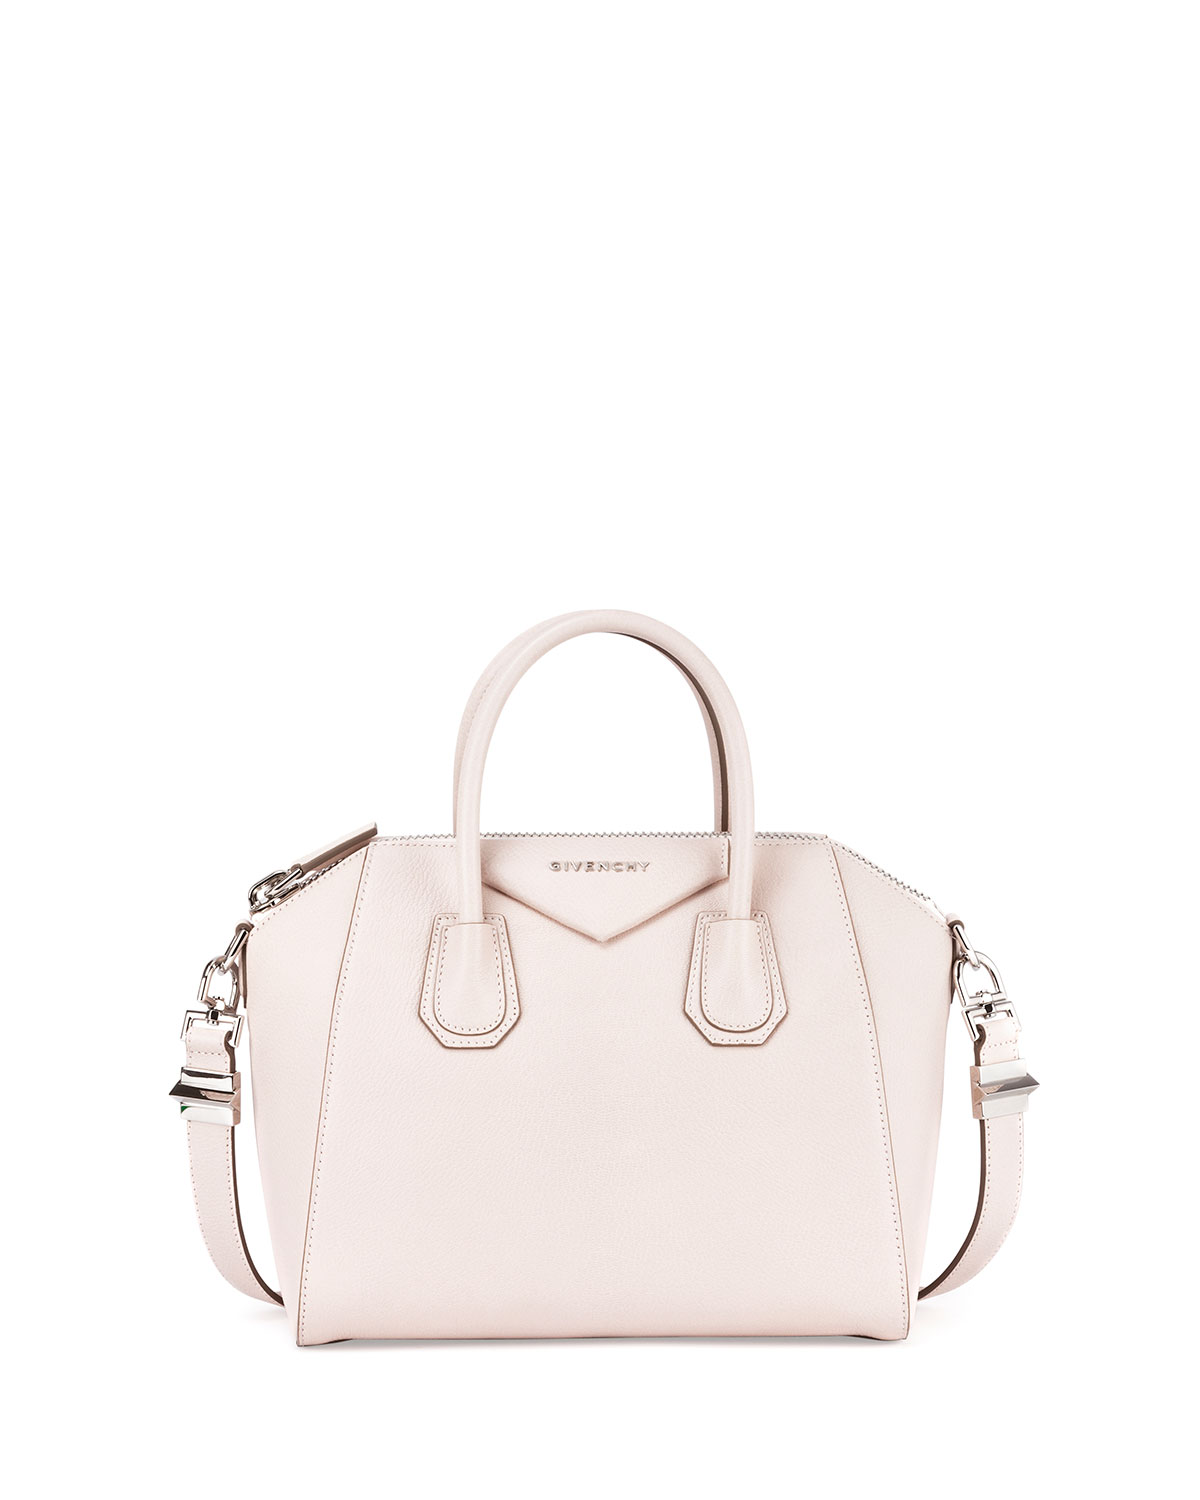 1f6c2ab10b7e Givenchy Antigona Sugar Small Satchel Bag